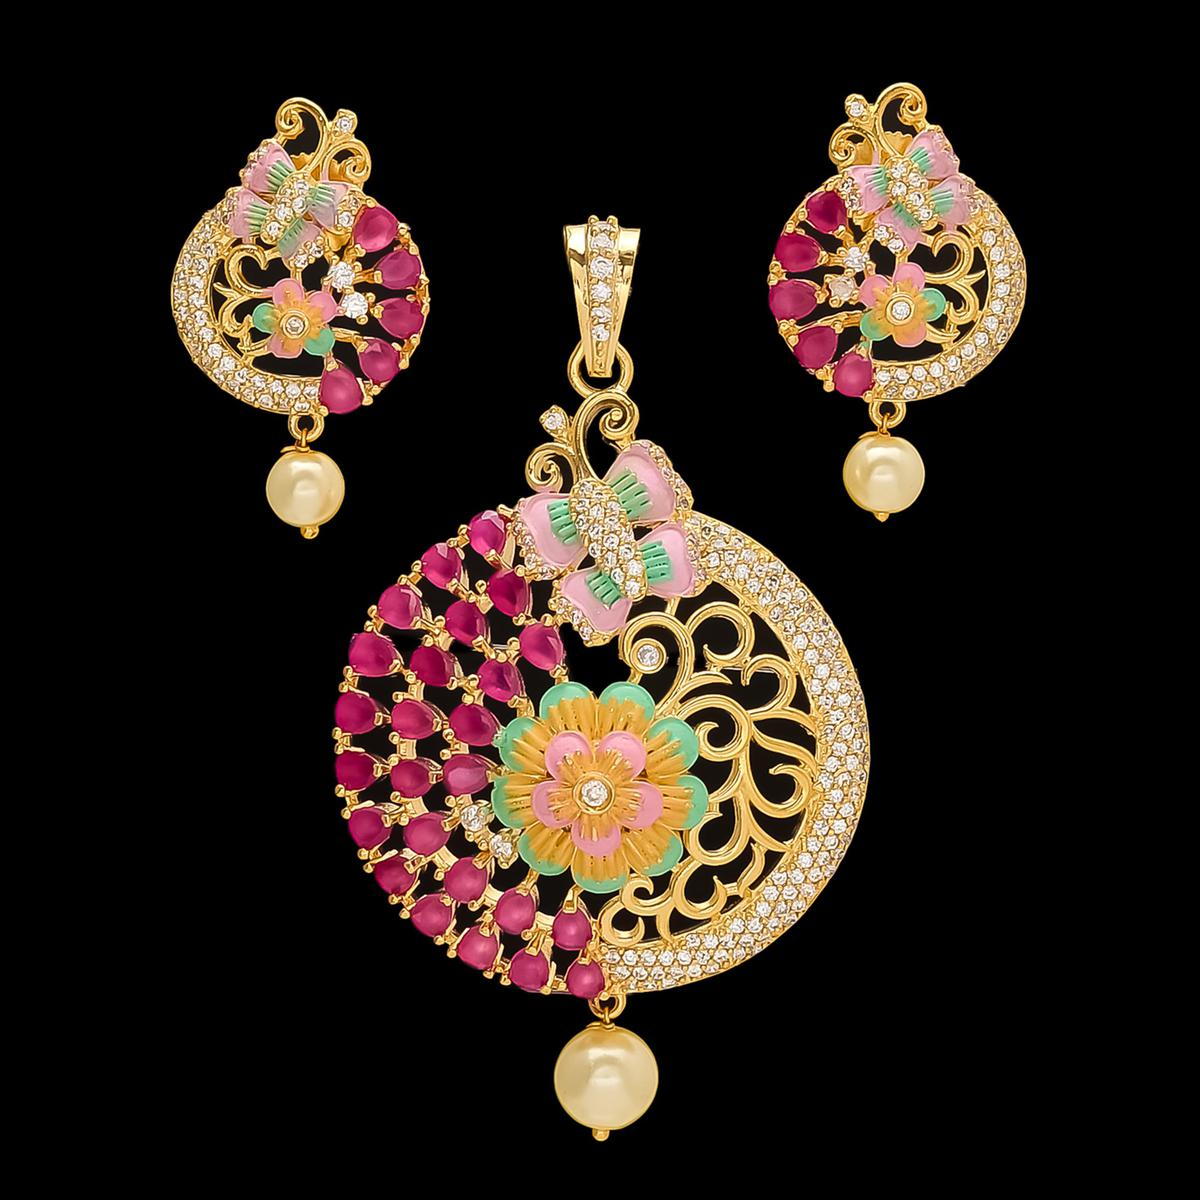 Flattering Pink-Golden Colored Meena American Diamond and Red Stone Pendant Set